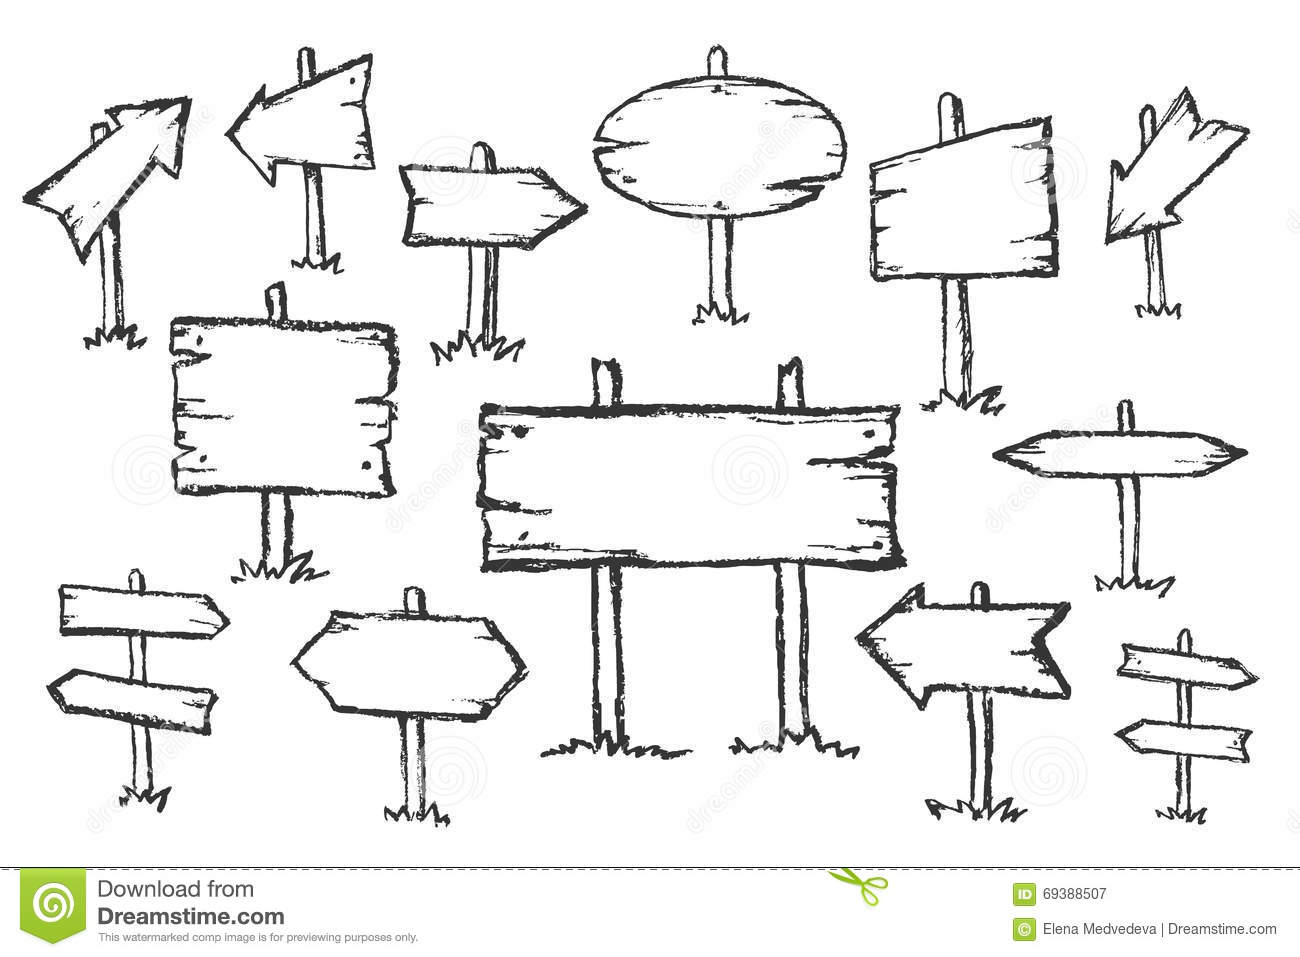 Drawn road doodle 69388507 Doodle Image Signs Hand